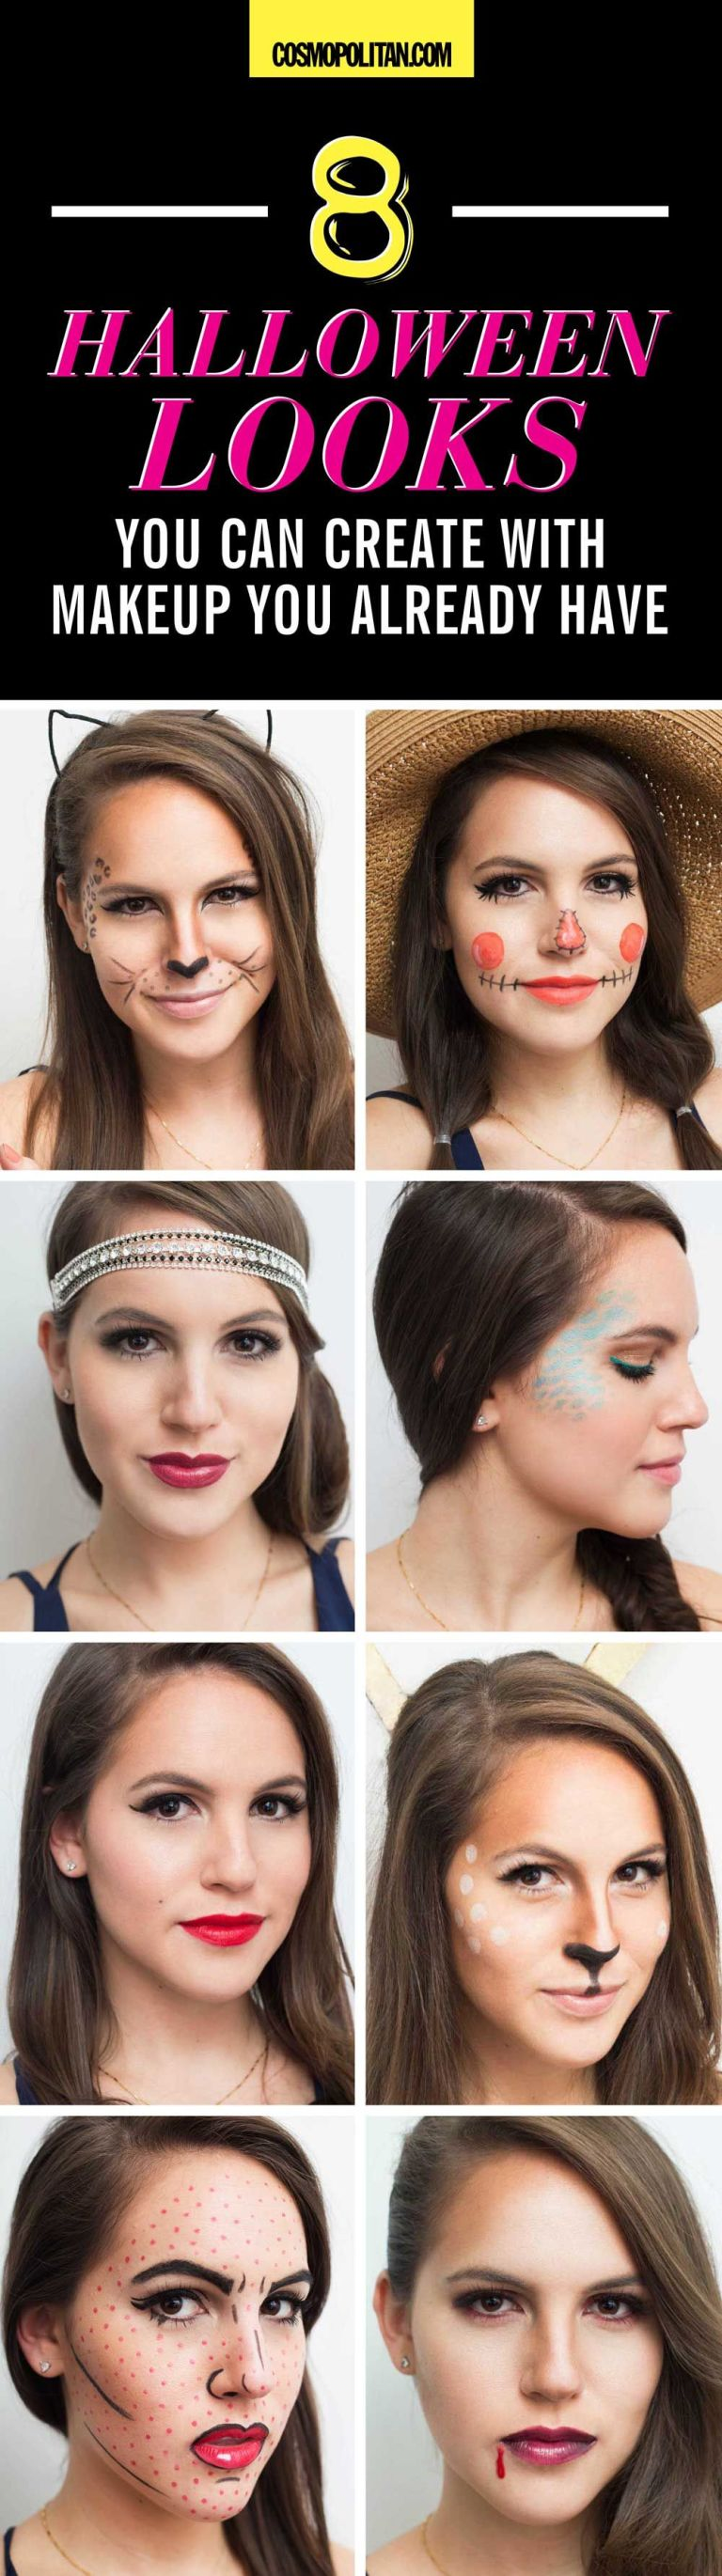 8 easy halloween makeup ideas halloween makeup tutorials with makeup you already have